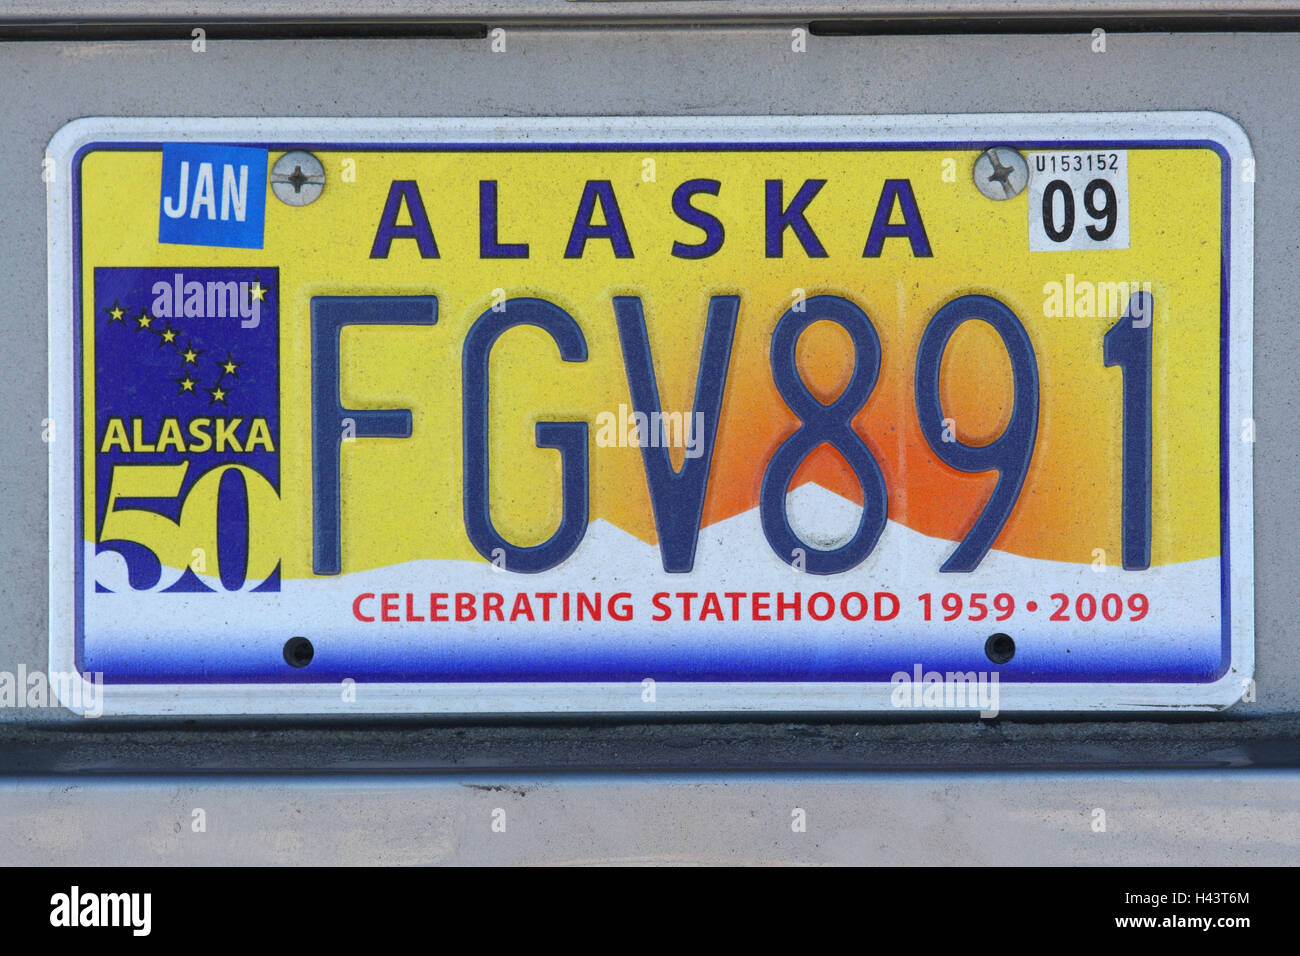 Car registration, Alaska